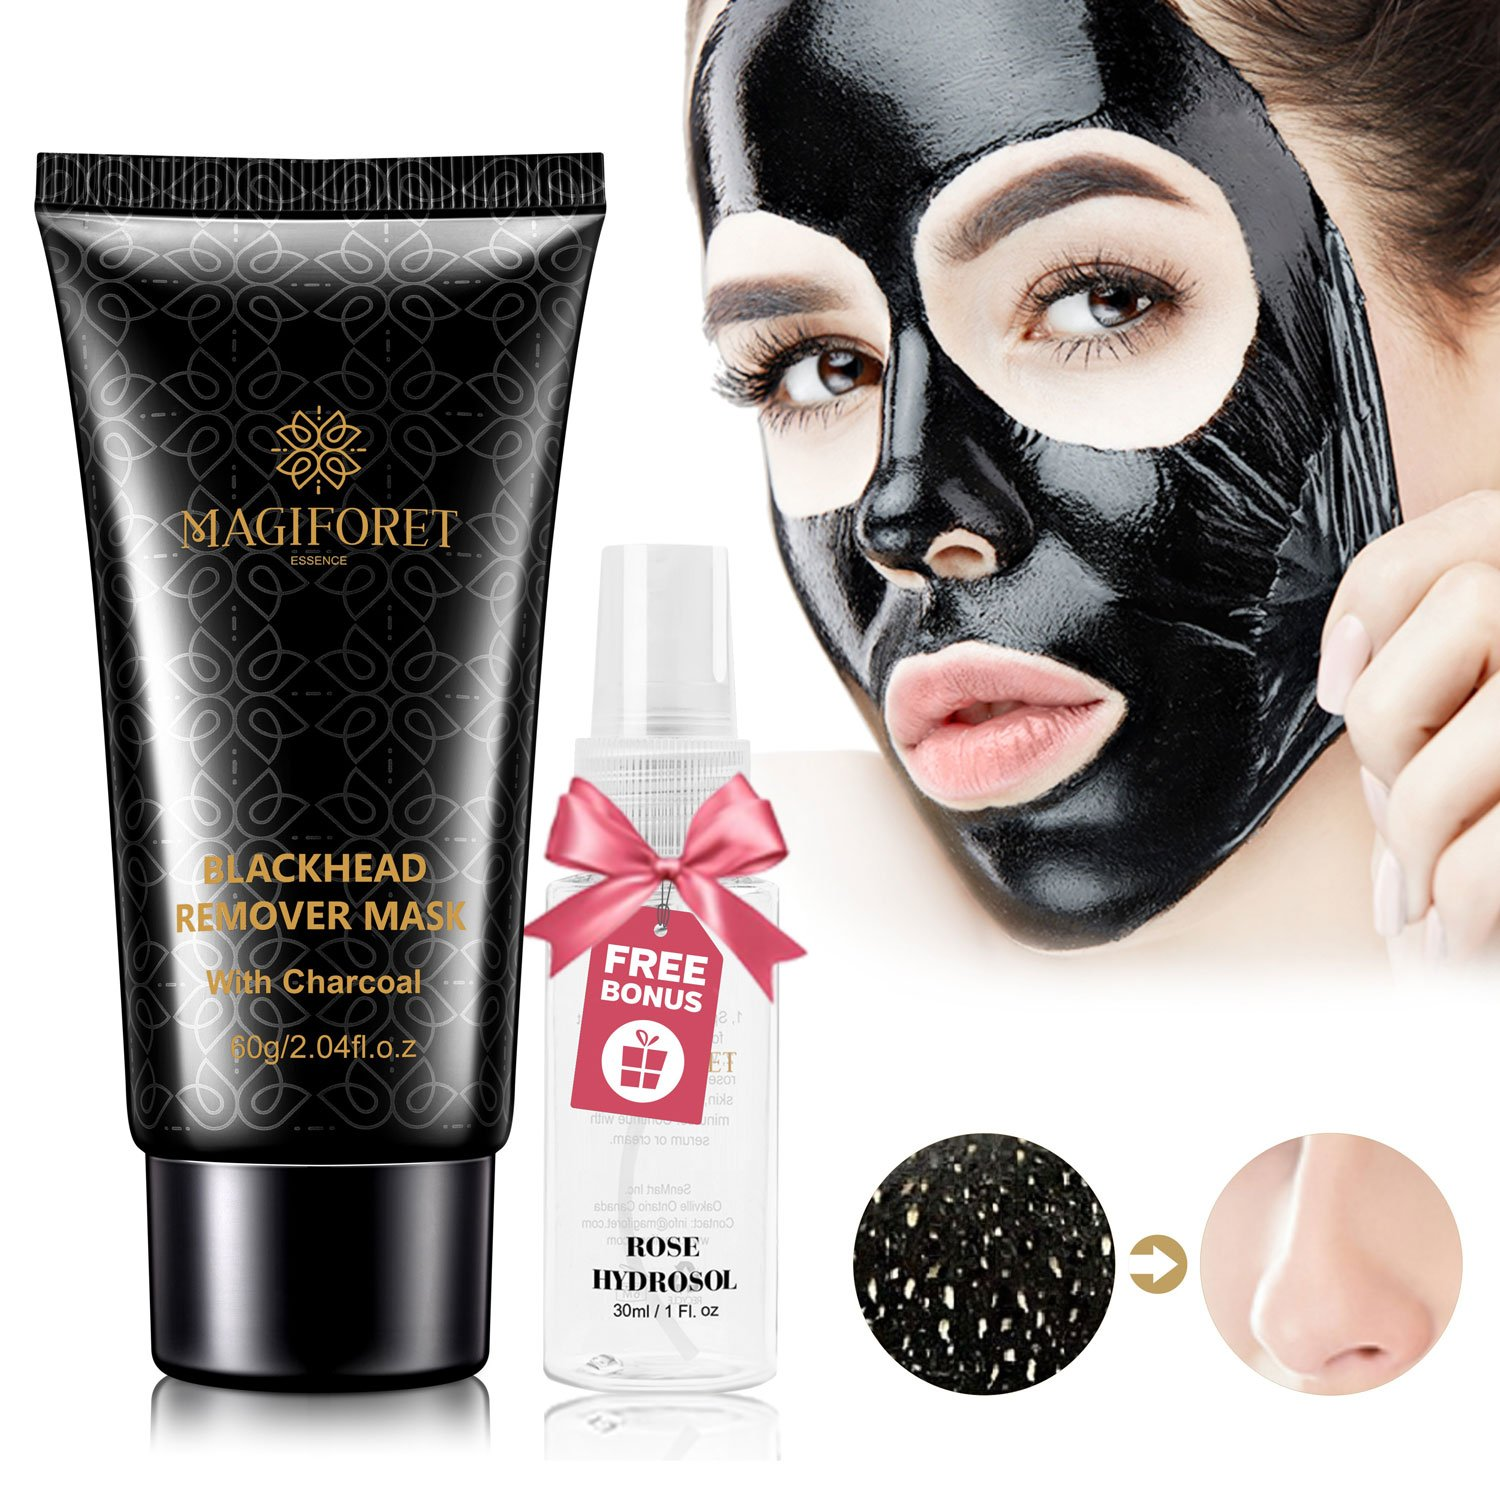 Black Mask, Charcoal Peel Off Mask, Off Mask, Blackhead Remover Mask, MagiForet Purifying Peel-off Mask Deep Cleansing Activated Charcoal Face Mask Treatment Oil Control 60g Rosewater Spray 30ml